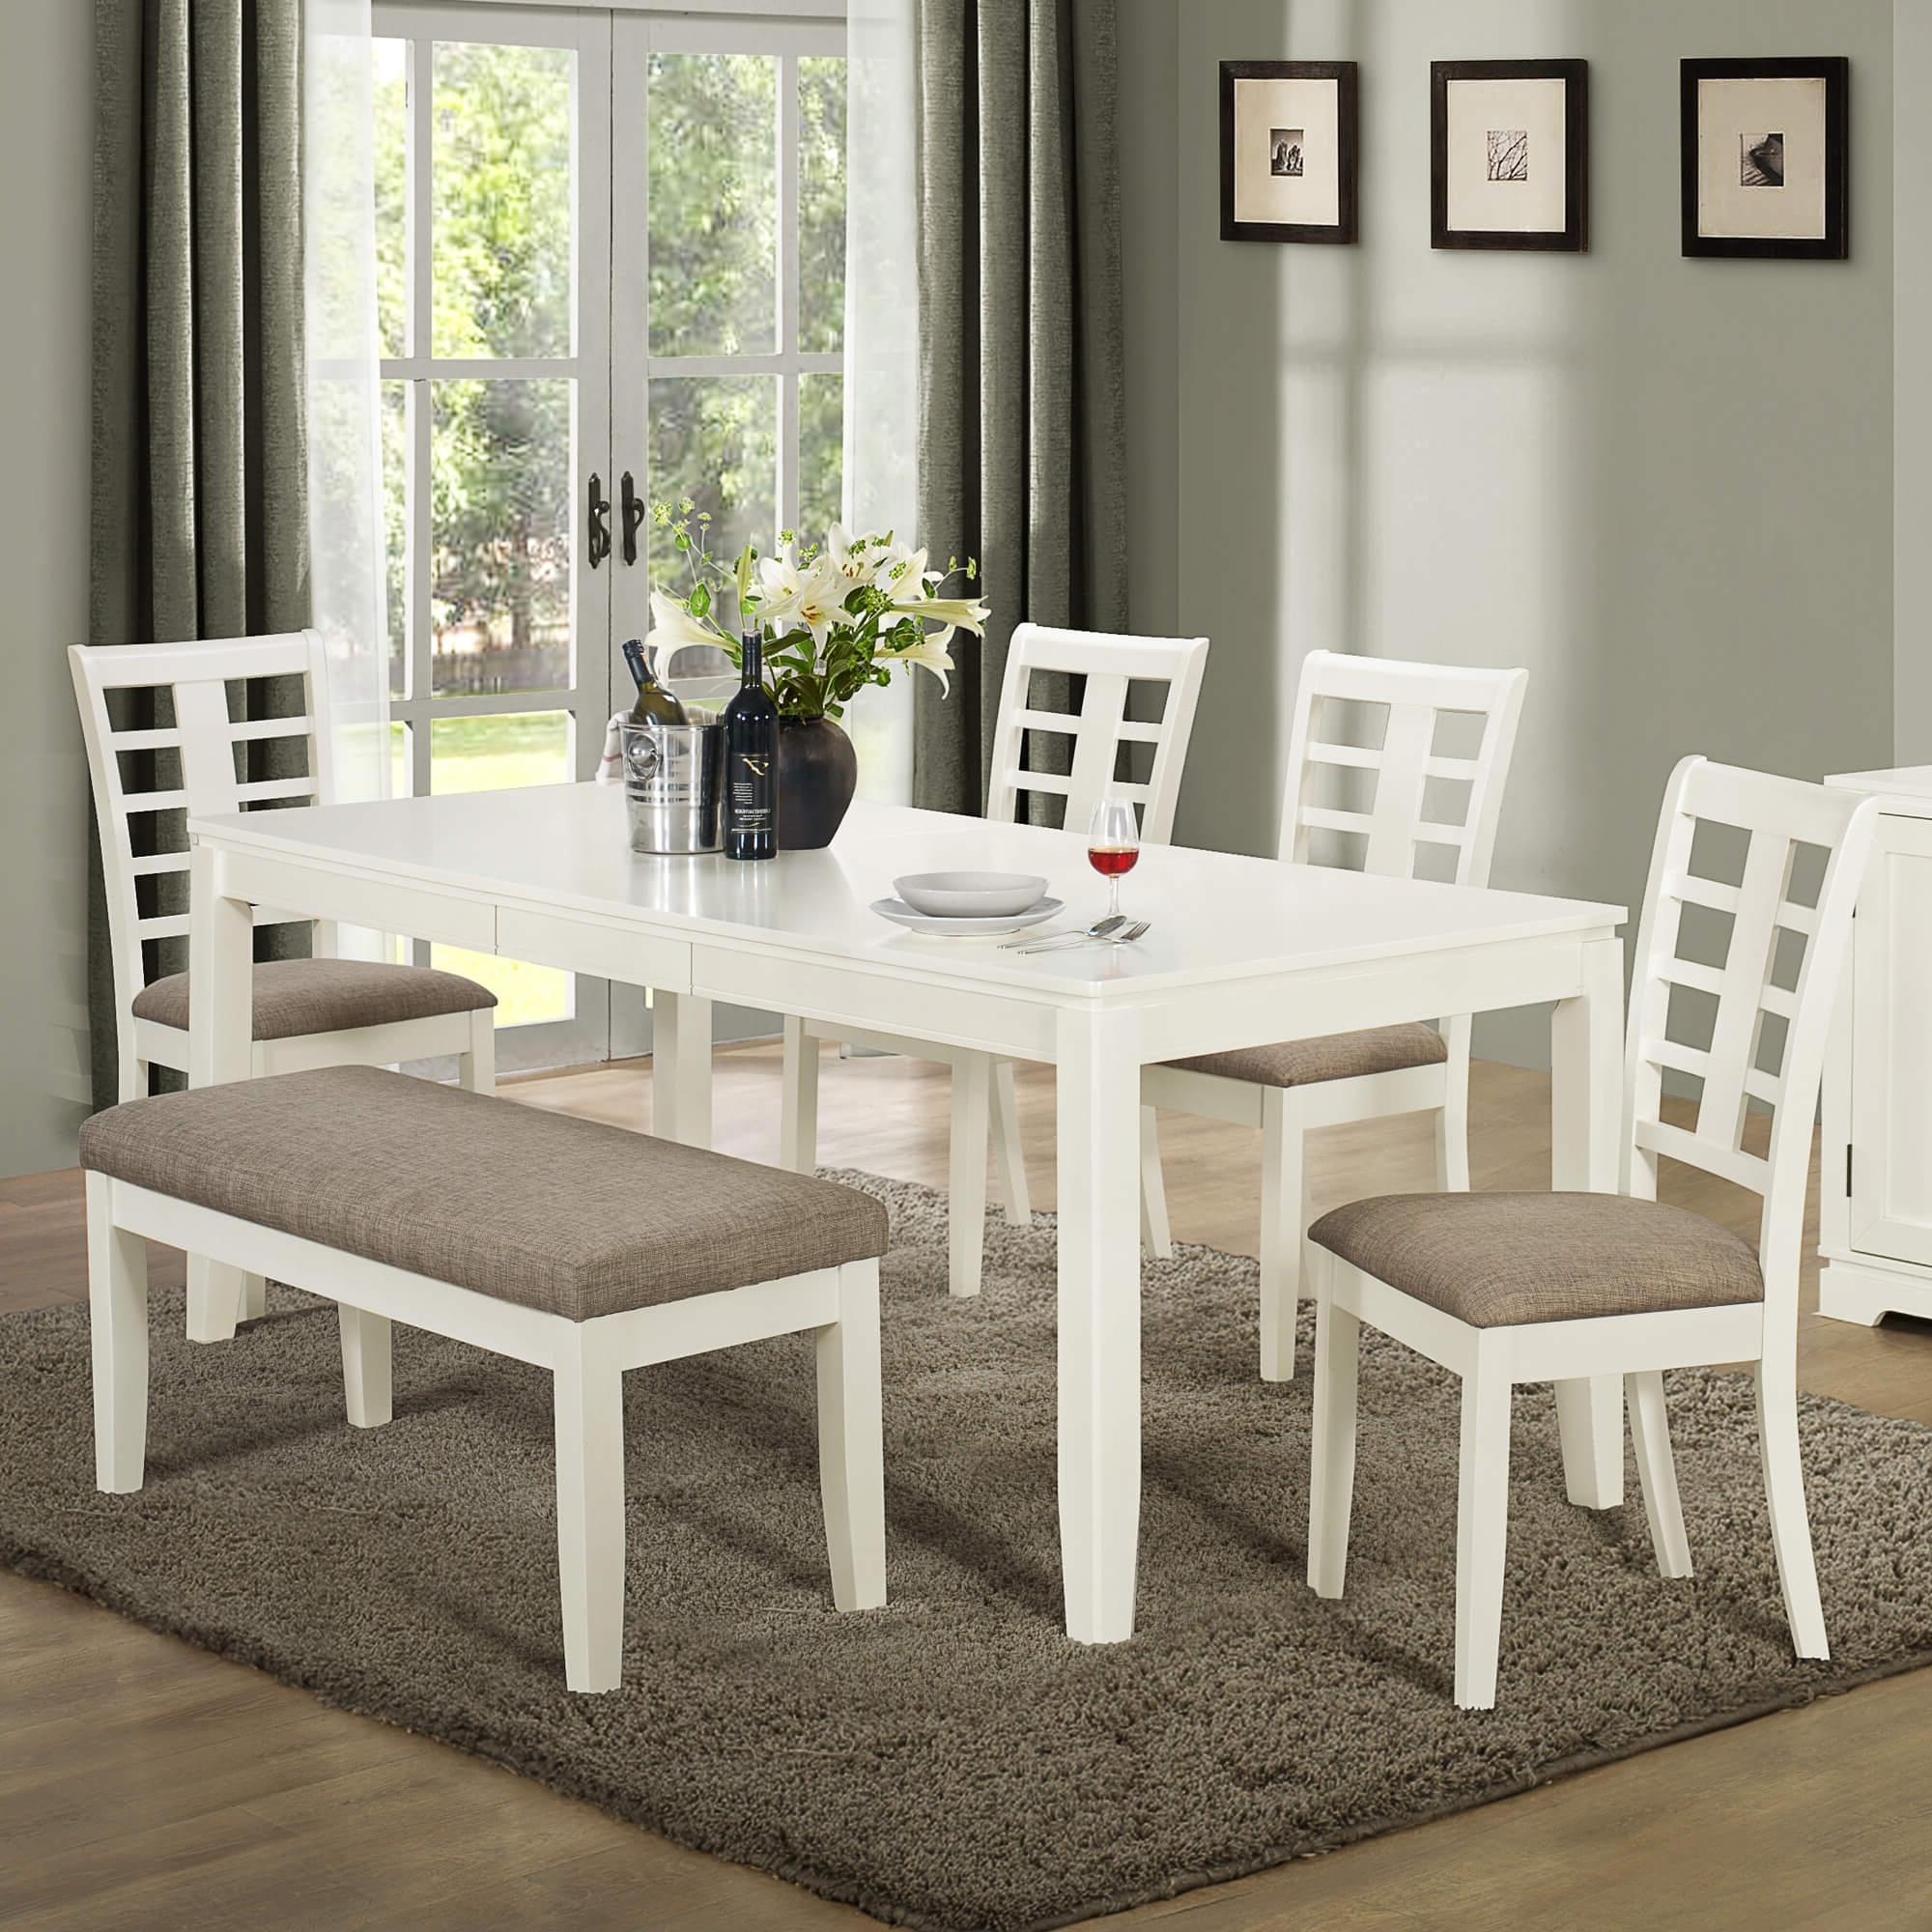 26 Dining Room Sets (Big And Small) With Bench Seating (2018) With Well Liked Craftsman 5 Piece Round Dining Sets With Uph Side Chairs (View 4 of 25)